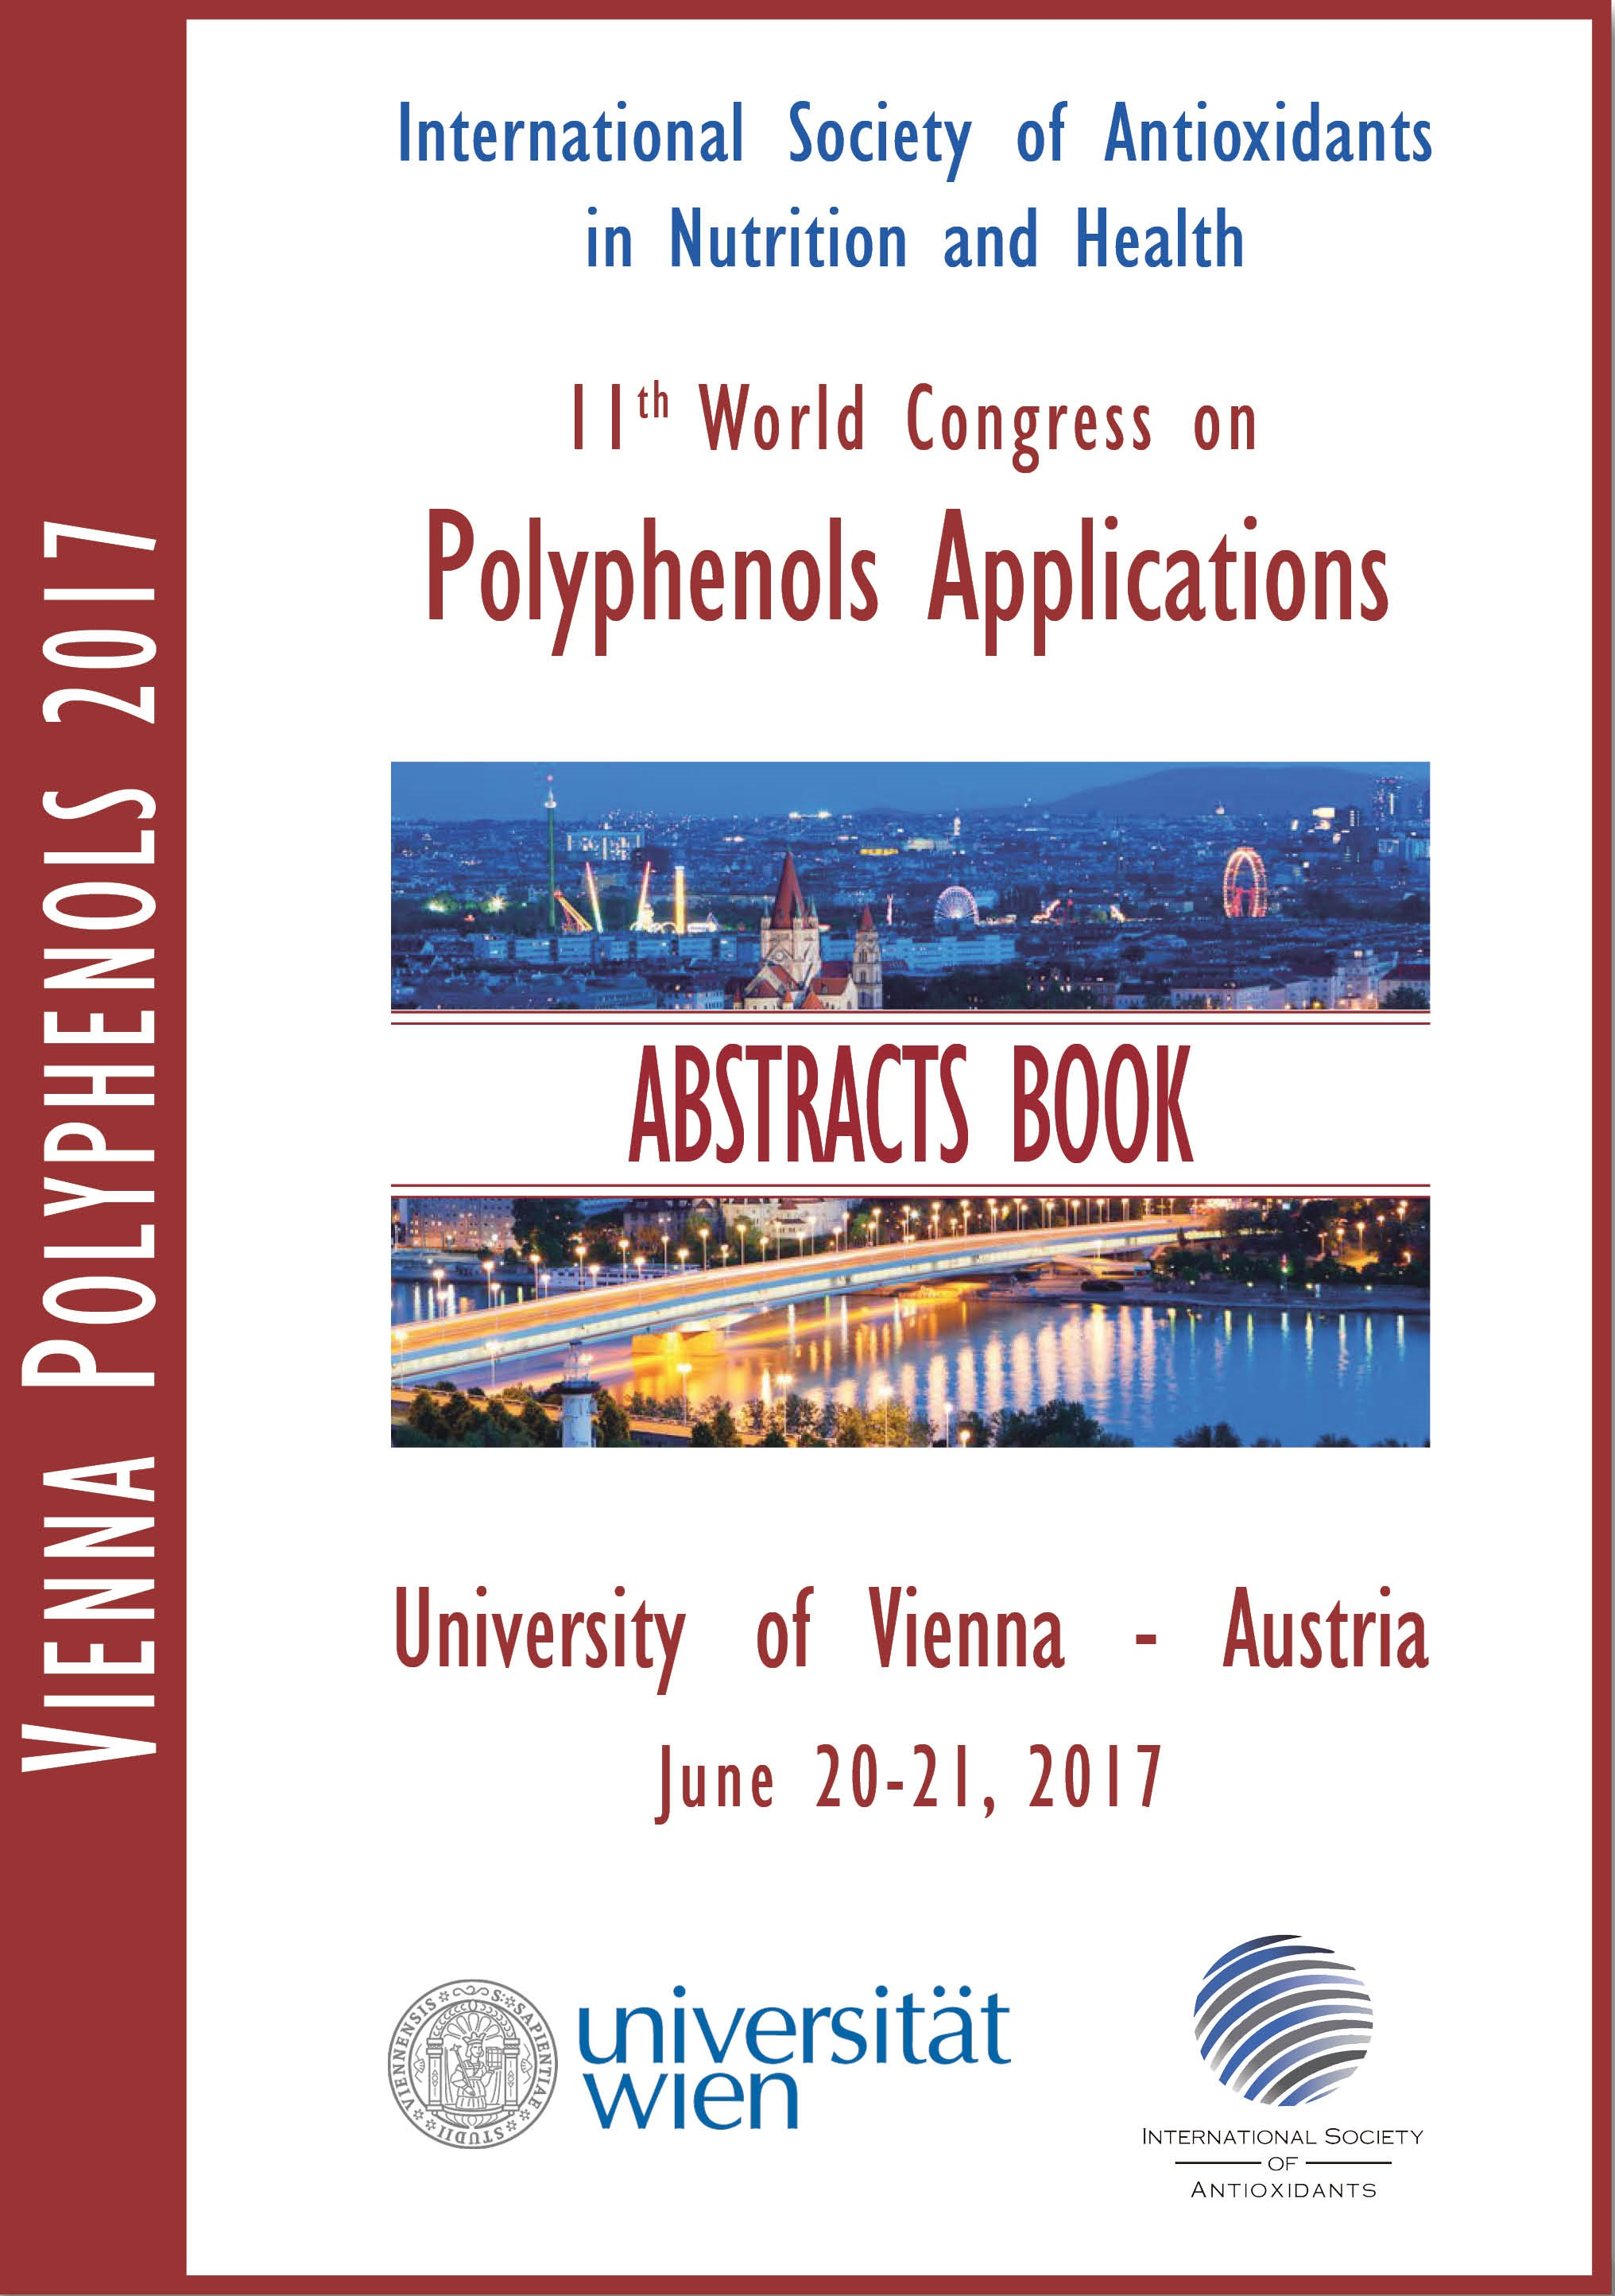 Polyphenols2017-abstract book